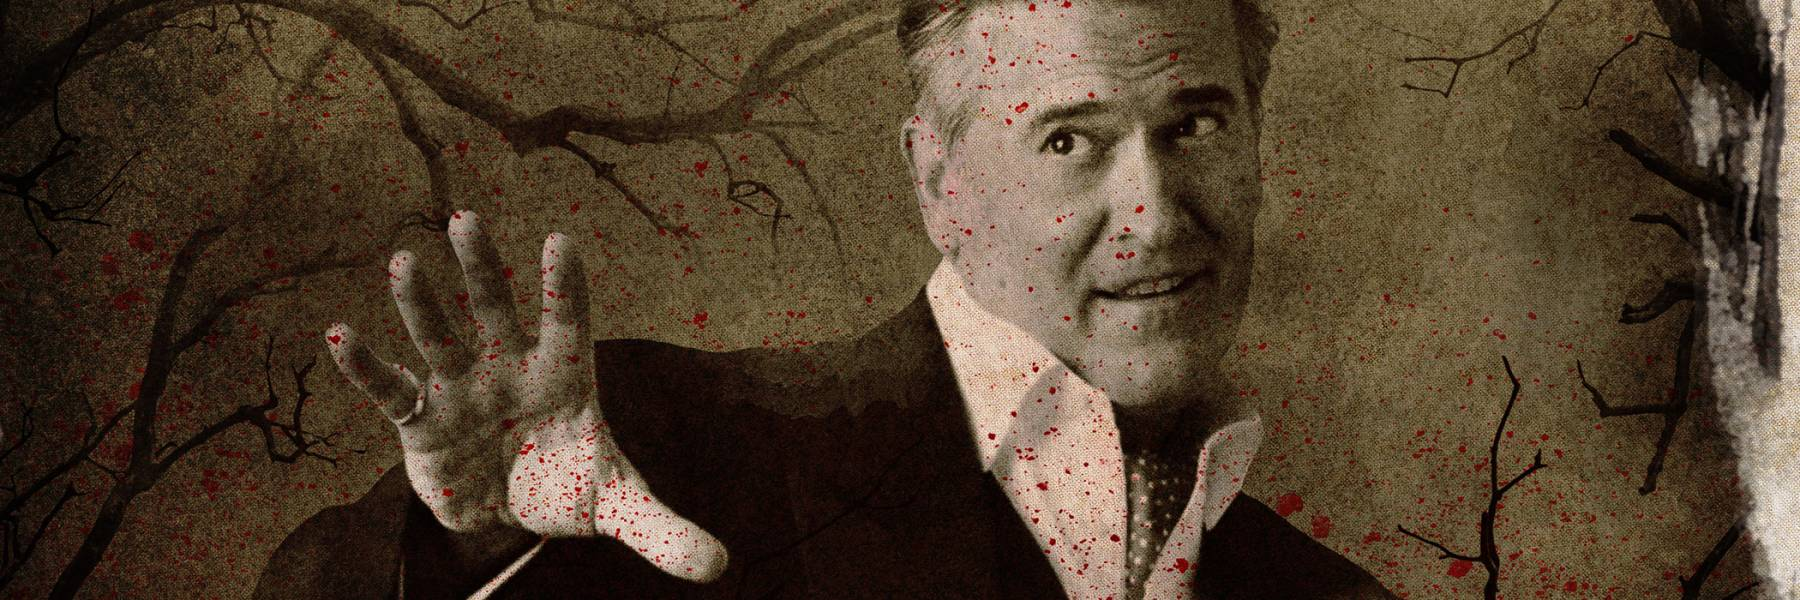 Blood spattered image of Bruce Campbell